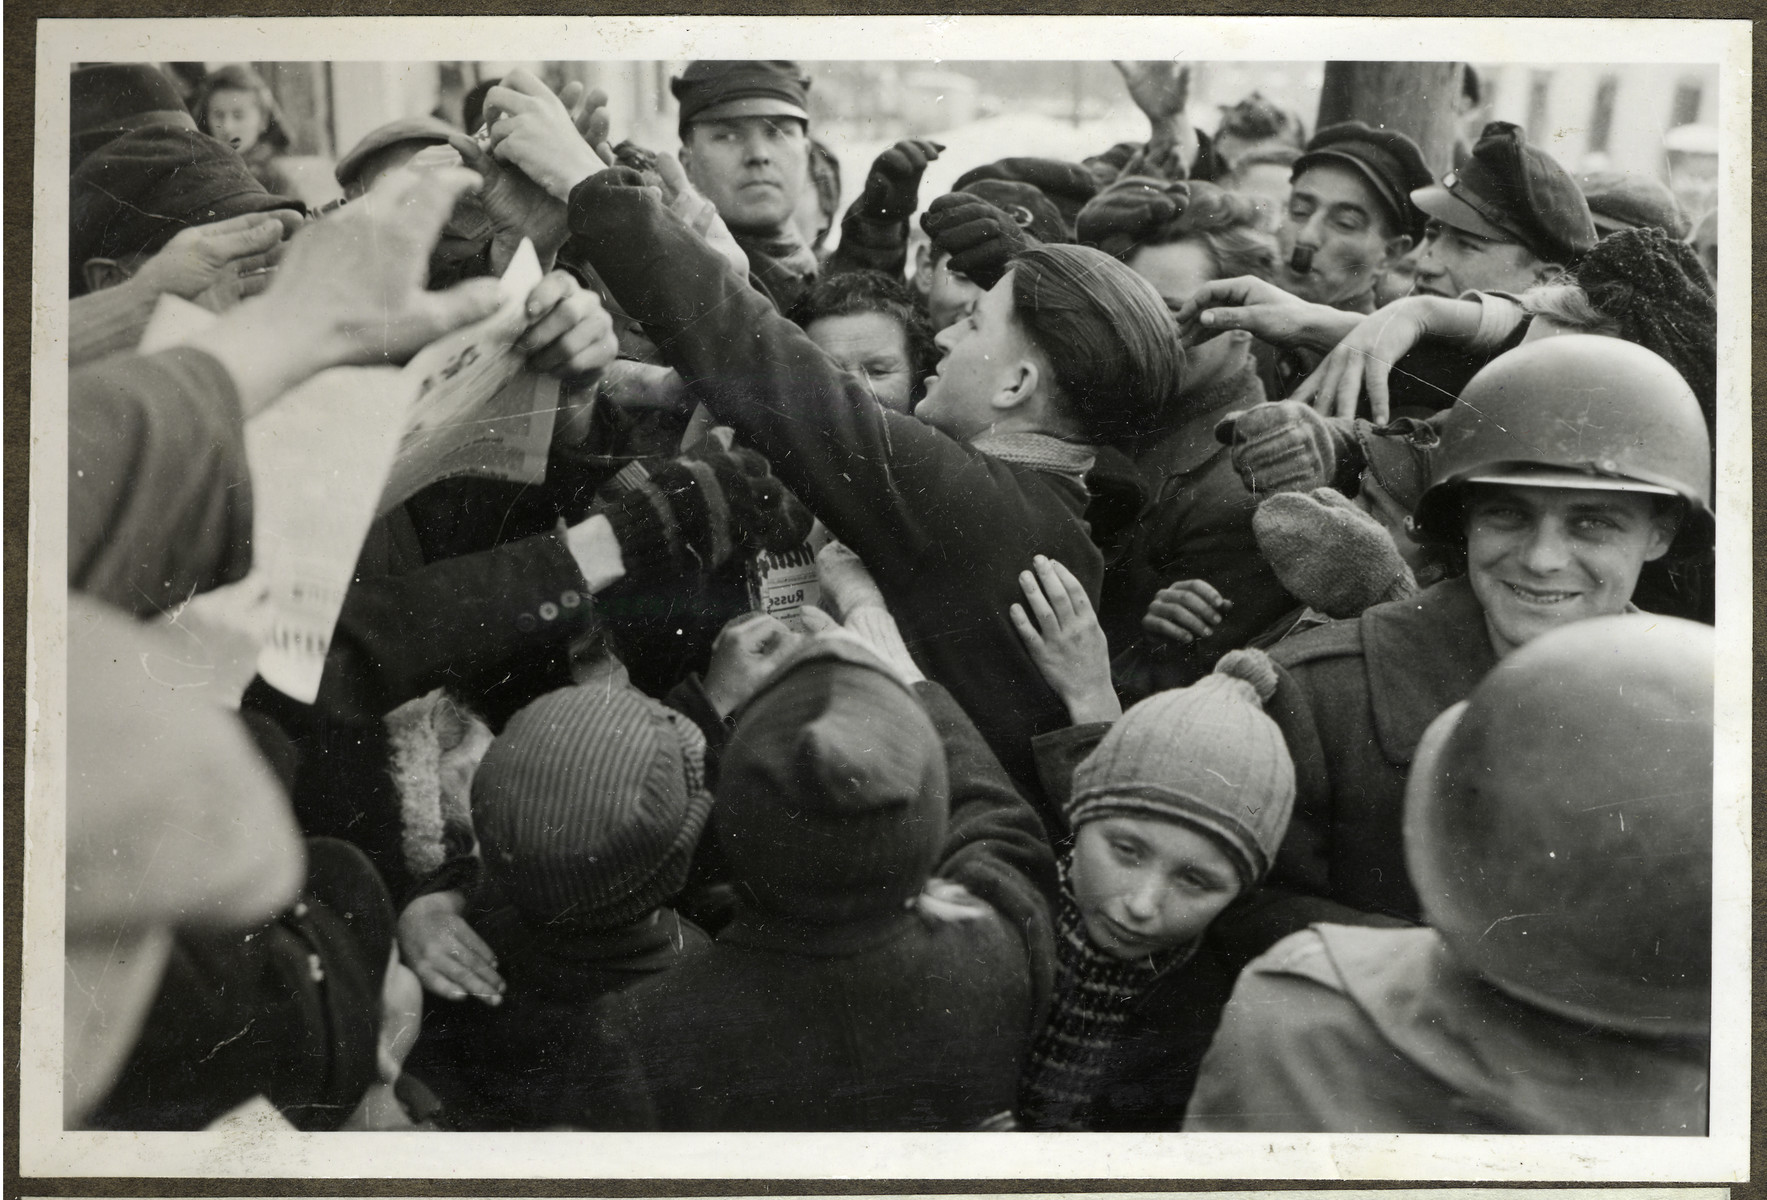 People of Ihn fight for a copy of the Mitteilungen, weekly newspaper of the 12th Army Group delivered to them.  Joseph Eaton is pictured facing the camera on the right.